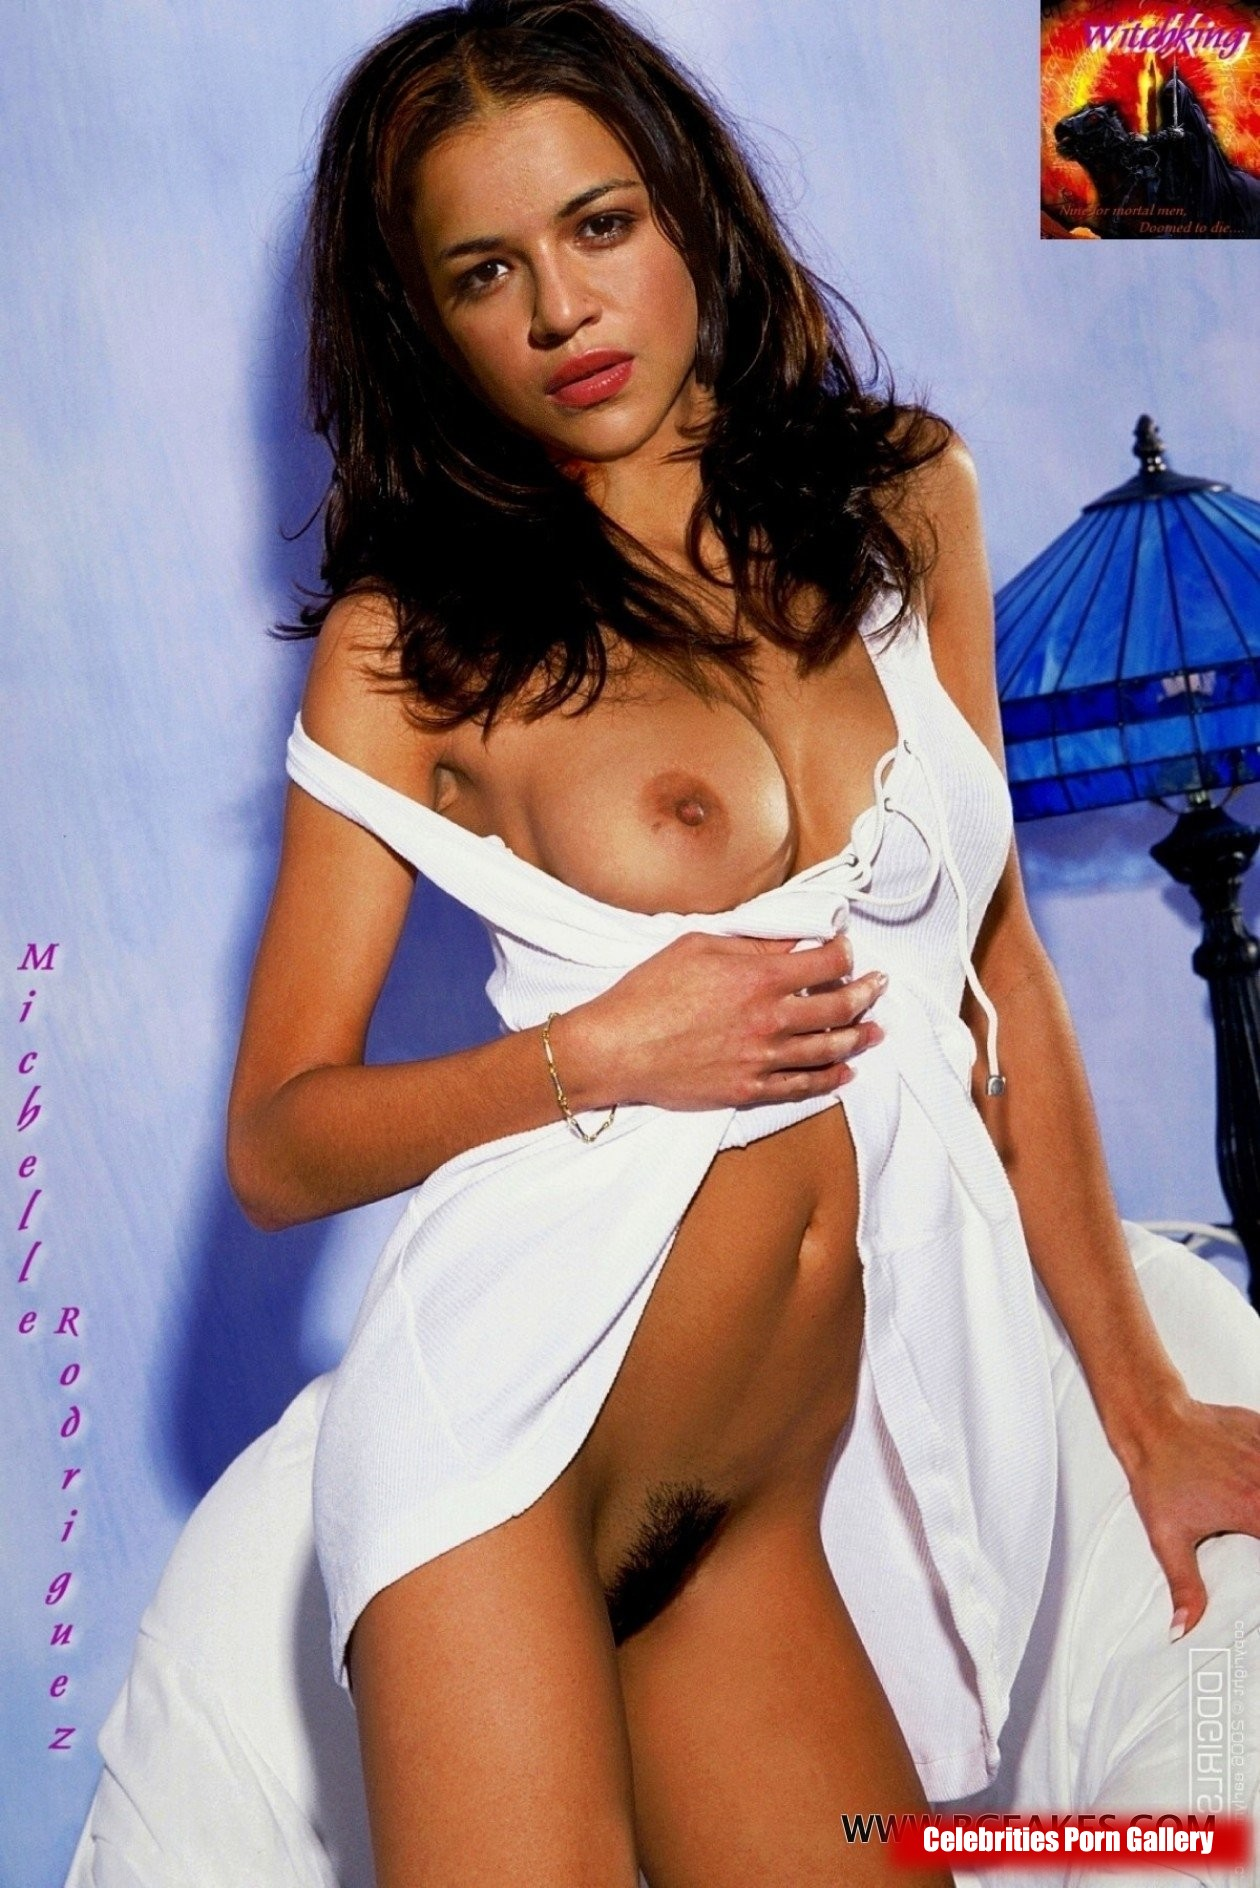 Boobs naked michelle rodriguez — photo 2